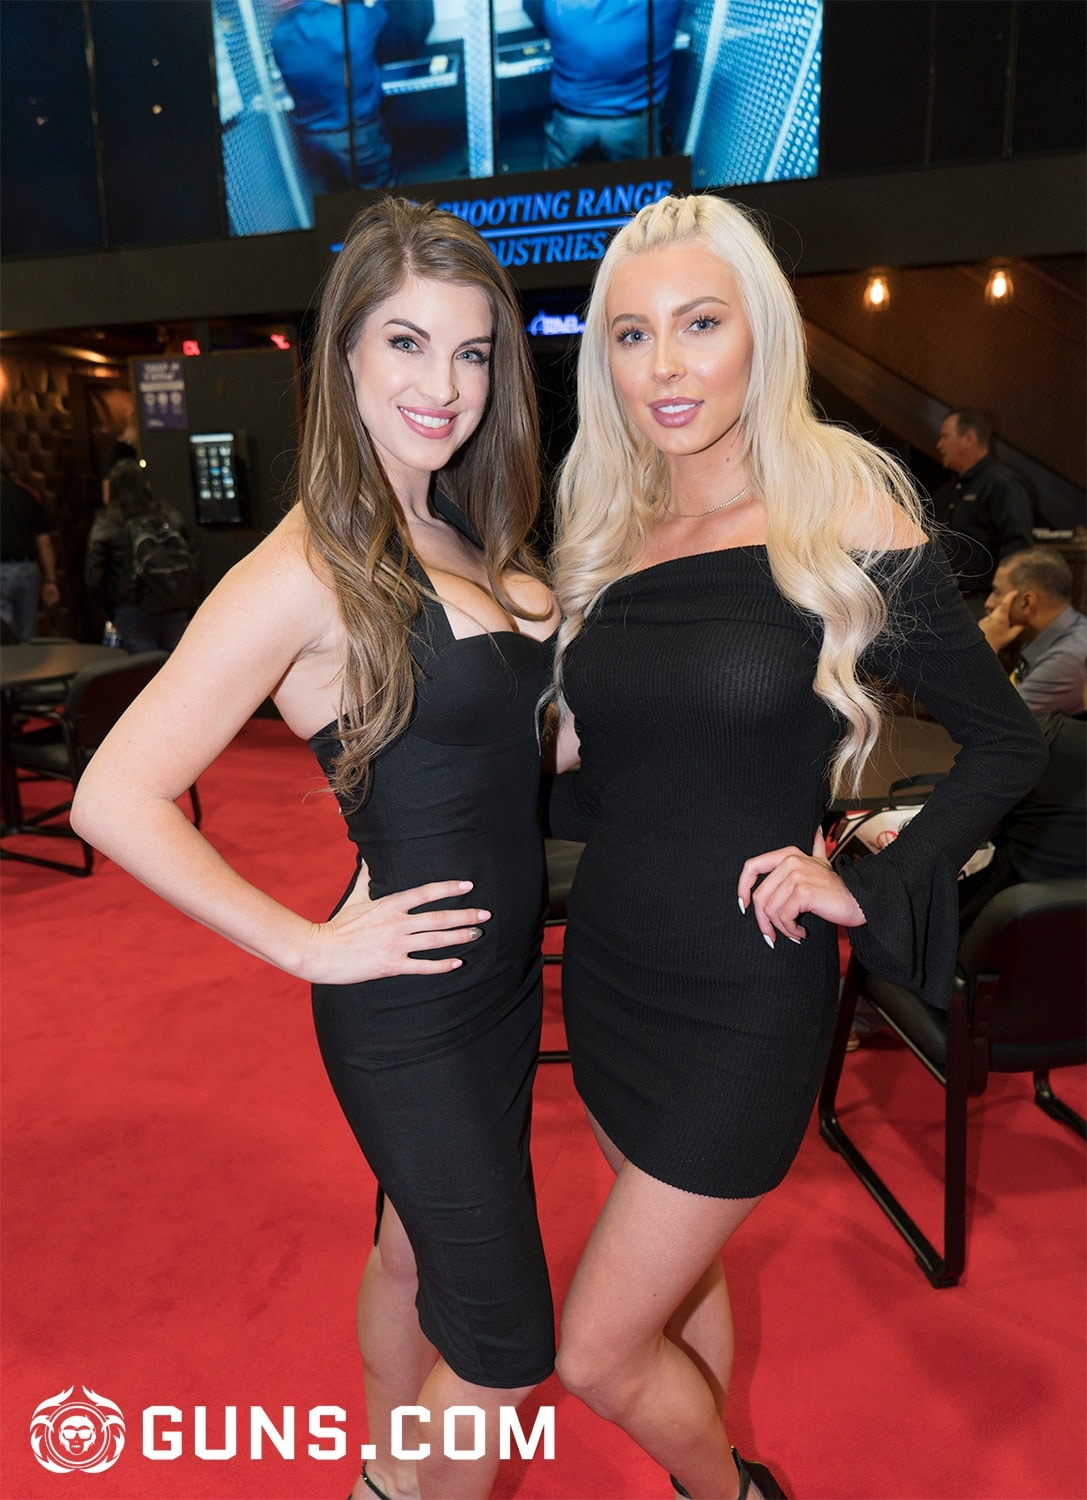 Arielle & Kasey with Shooting Range Systems. (Photo: Ben Philippi/Guns.com)